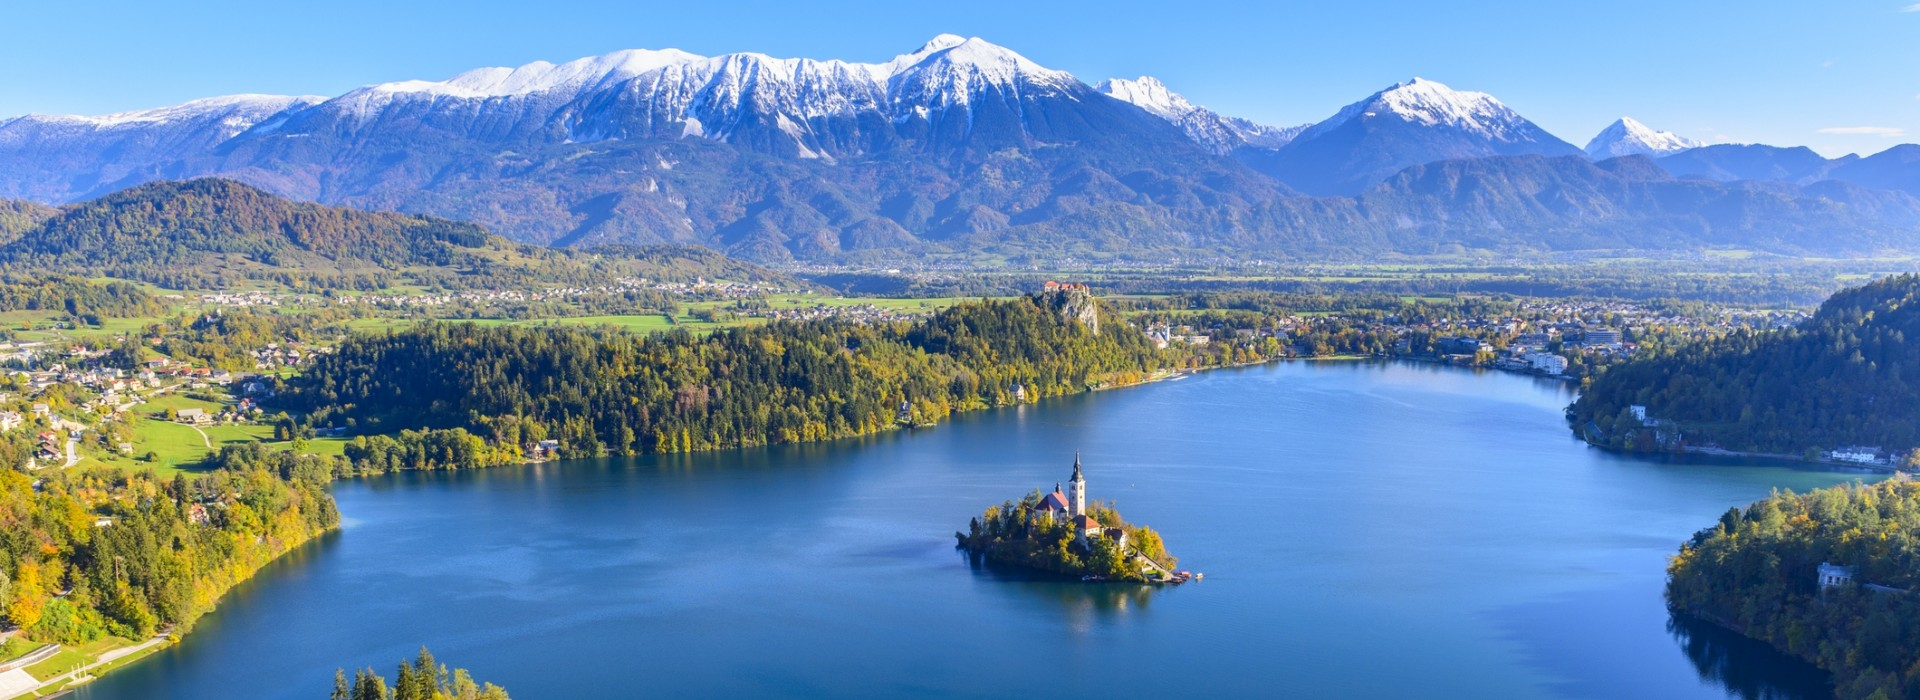 Travelling Slovenia - Tours and Trips in Slovenia